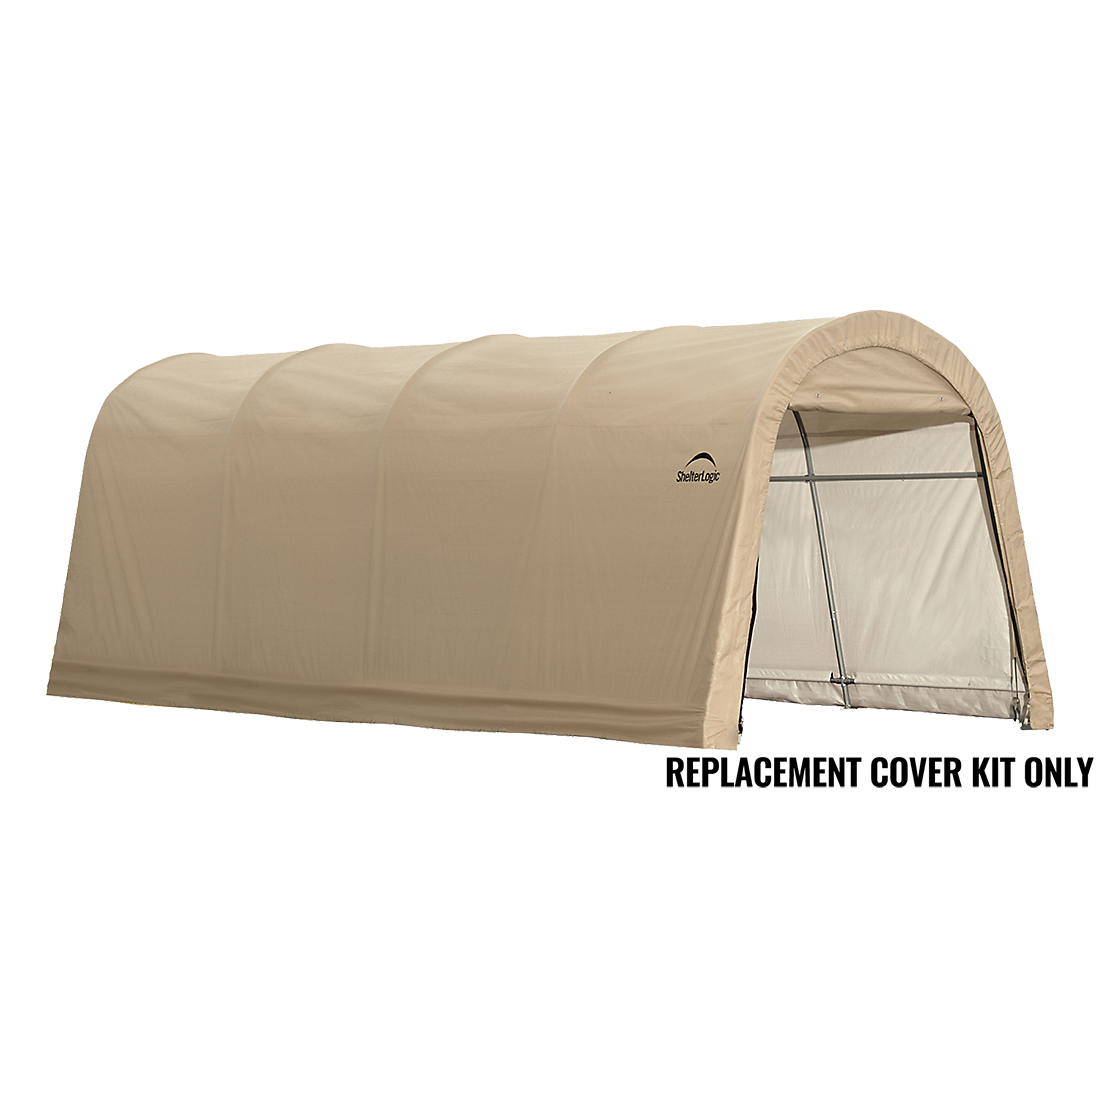 Replacement Cover Kit for the AutoShelter RoundTop® 10 x 20 x 8 ft.